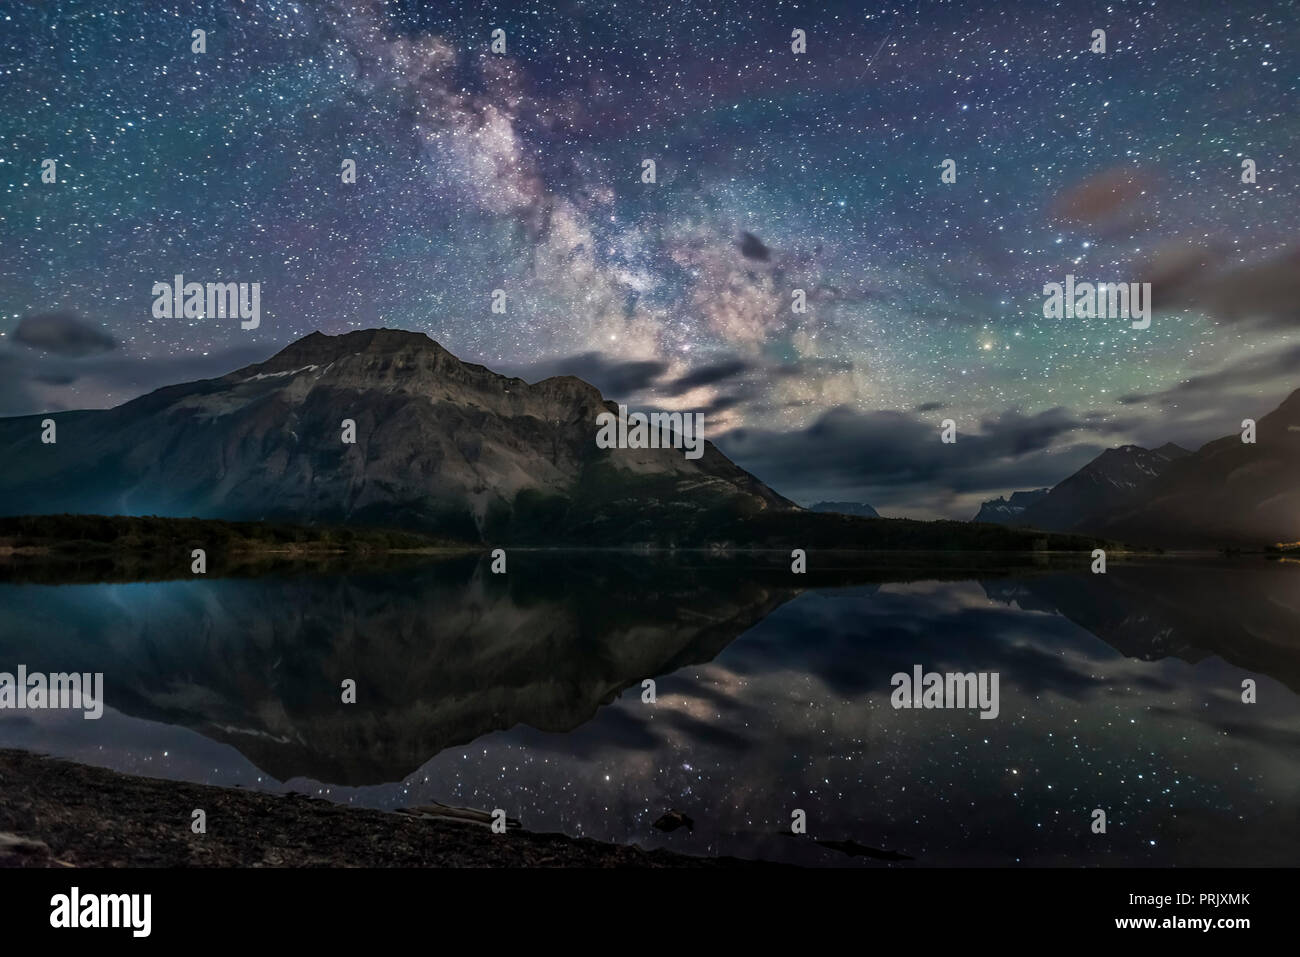 The Milky Way reflected in the unusually calm waters of Middle Waterton Lake from Driftwood Beach, in Waterton Lakes National Park, Alberta, Canada. T - Stock Image